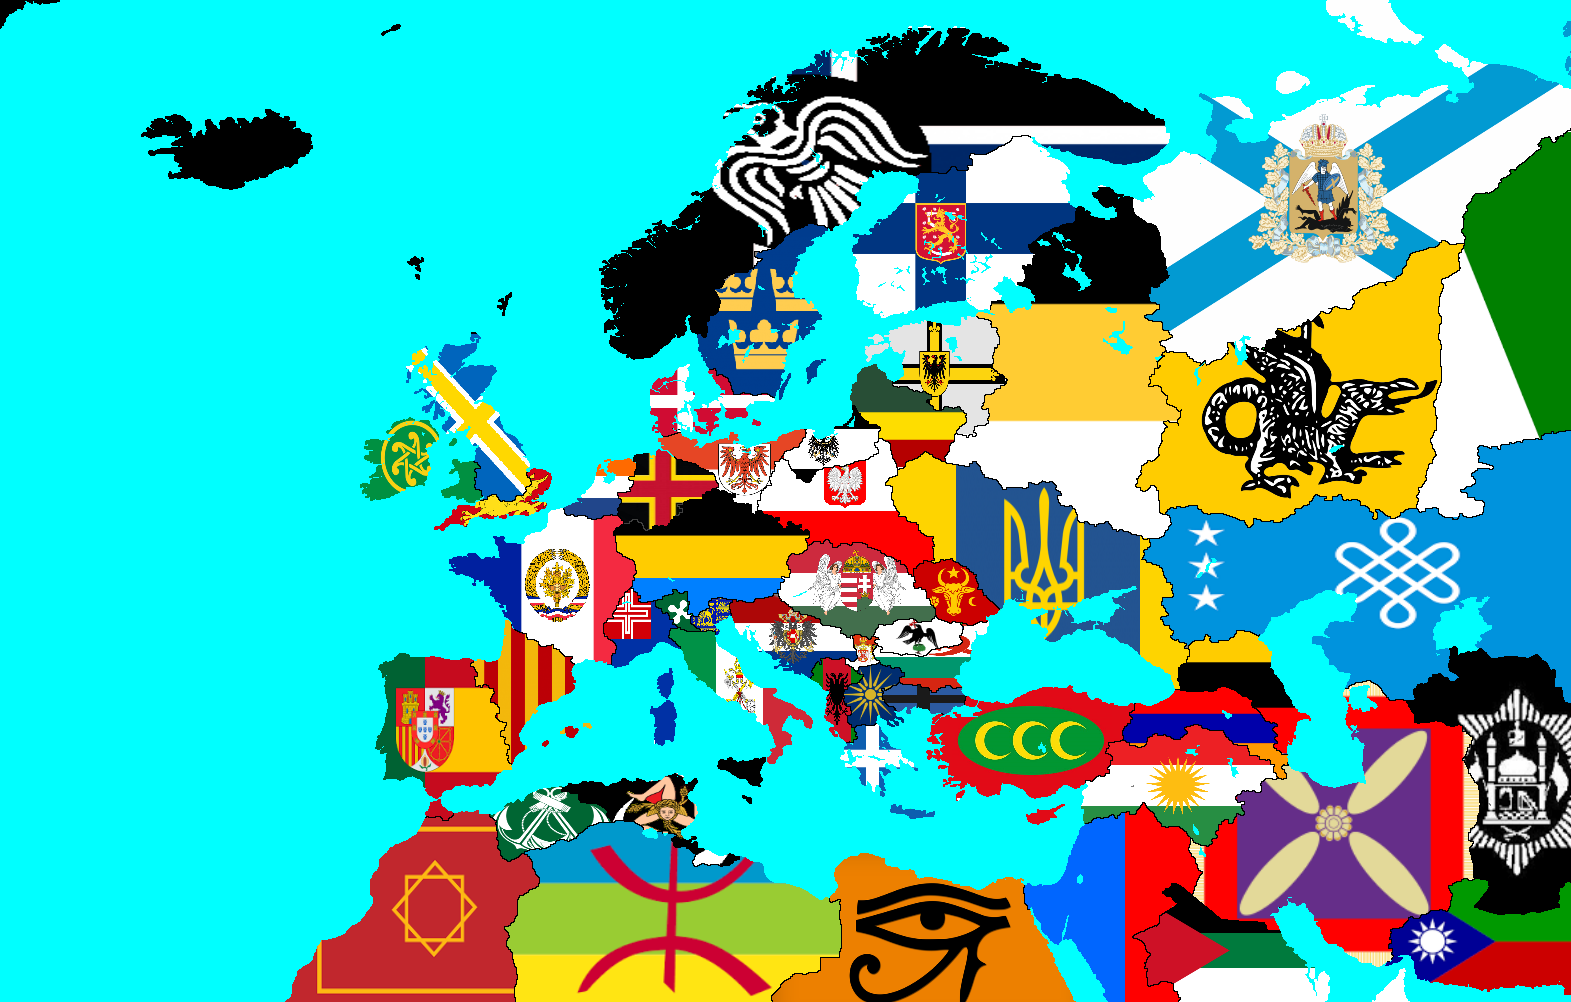 Alternative Map Of Europe.Image Result For Alternate Map Of Europe Alternate Flags And Maps